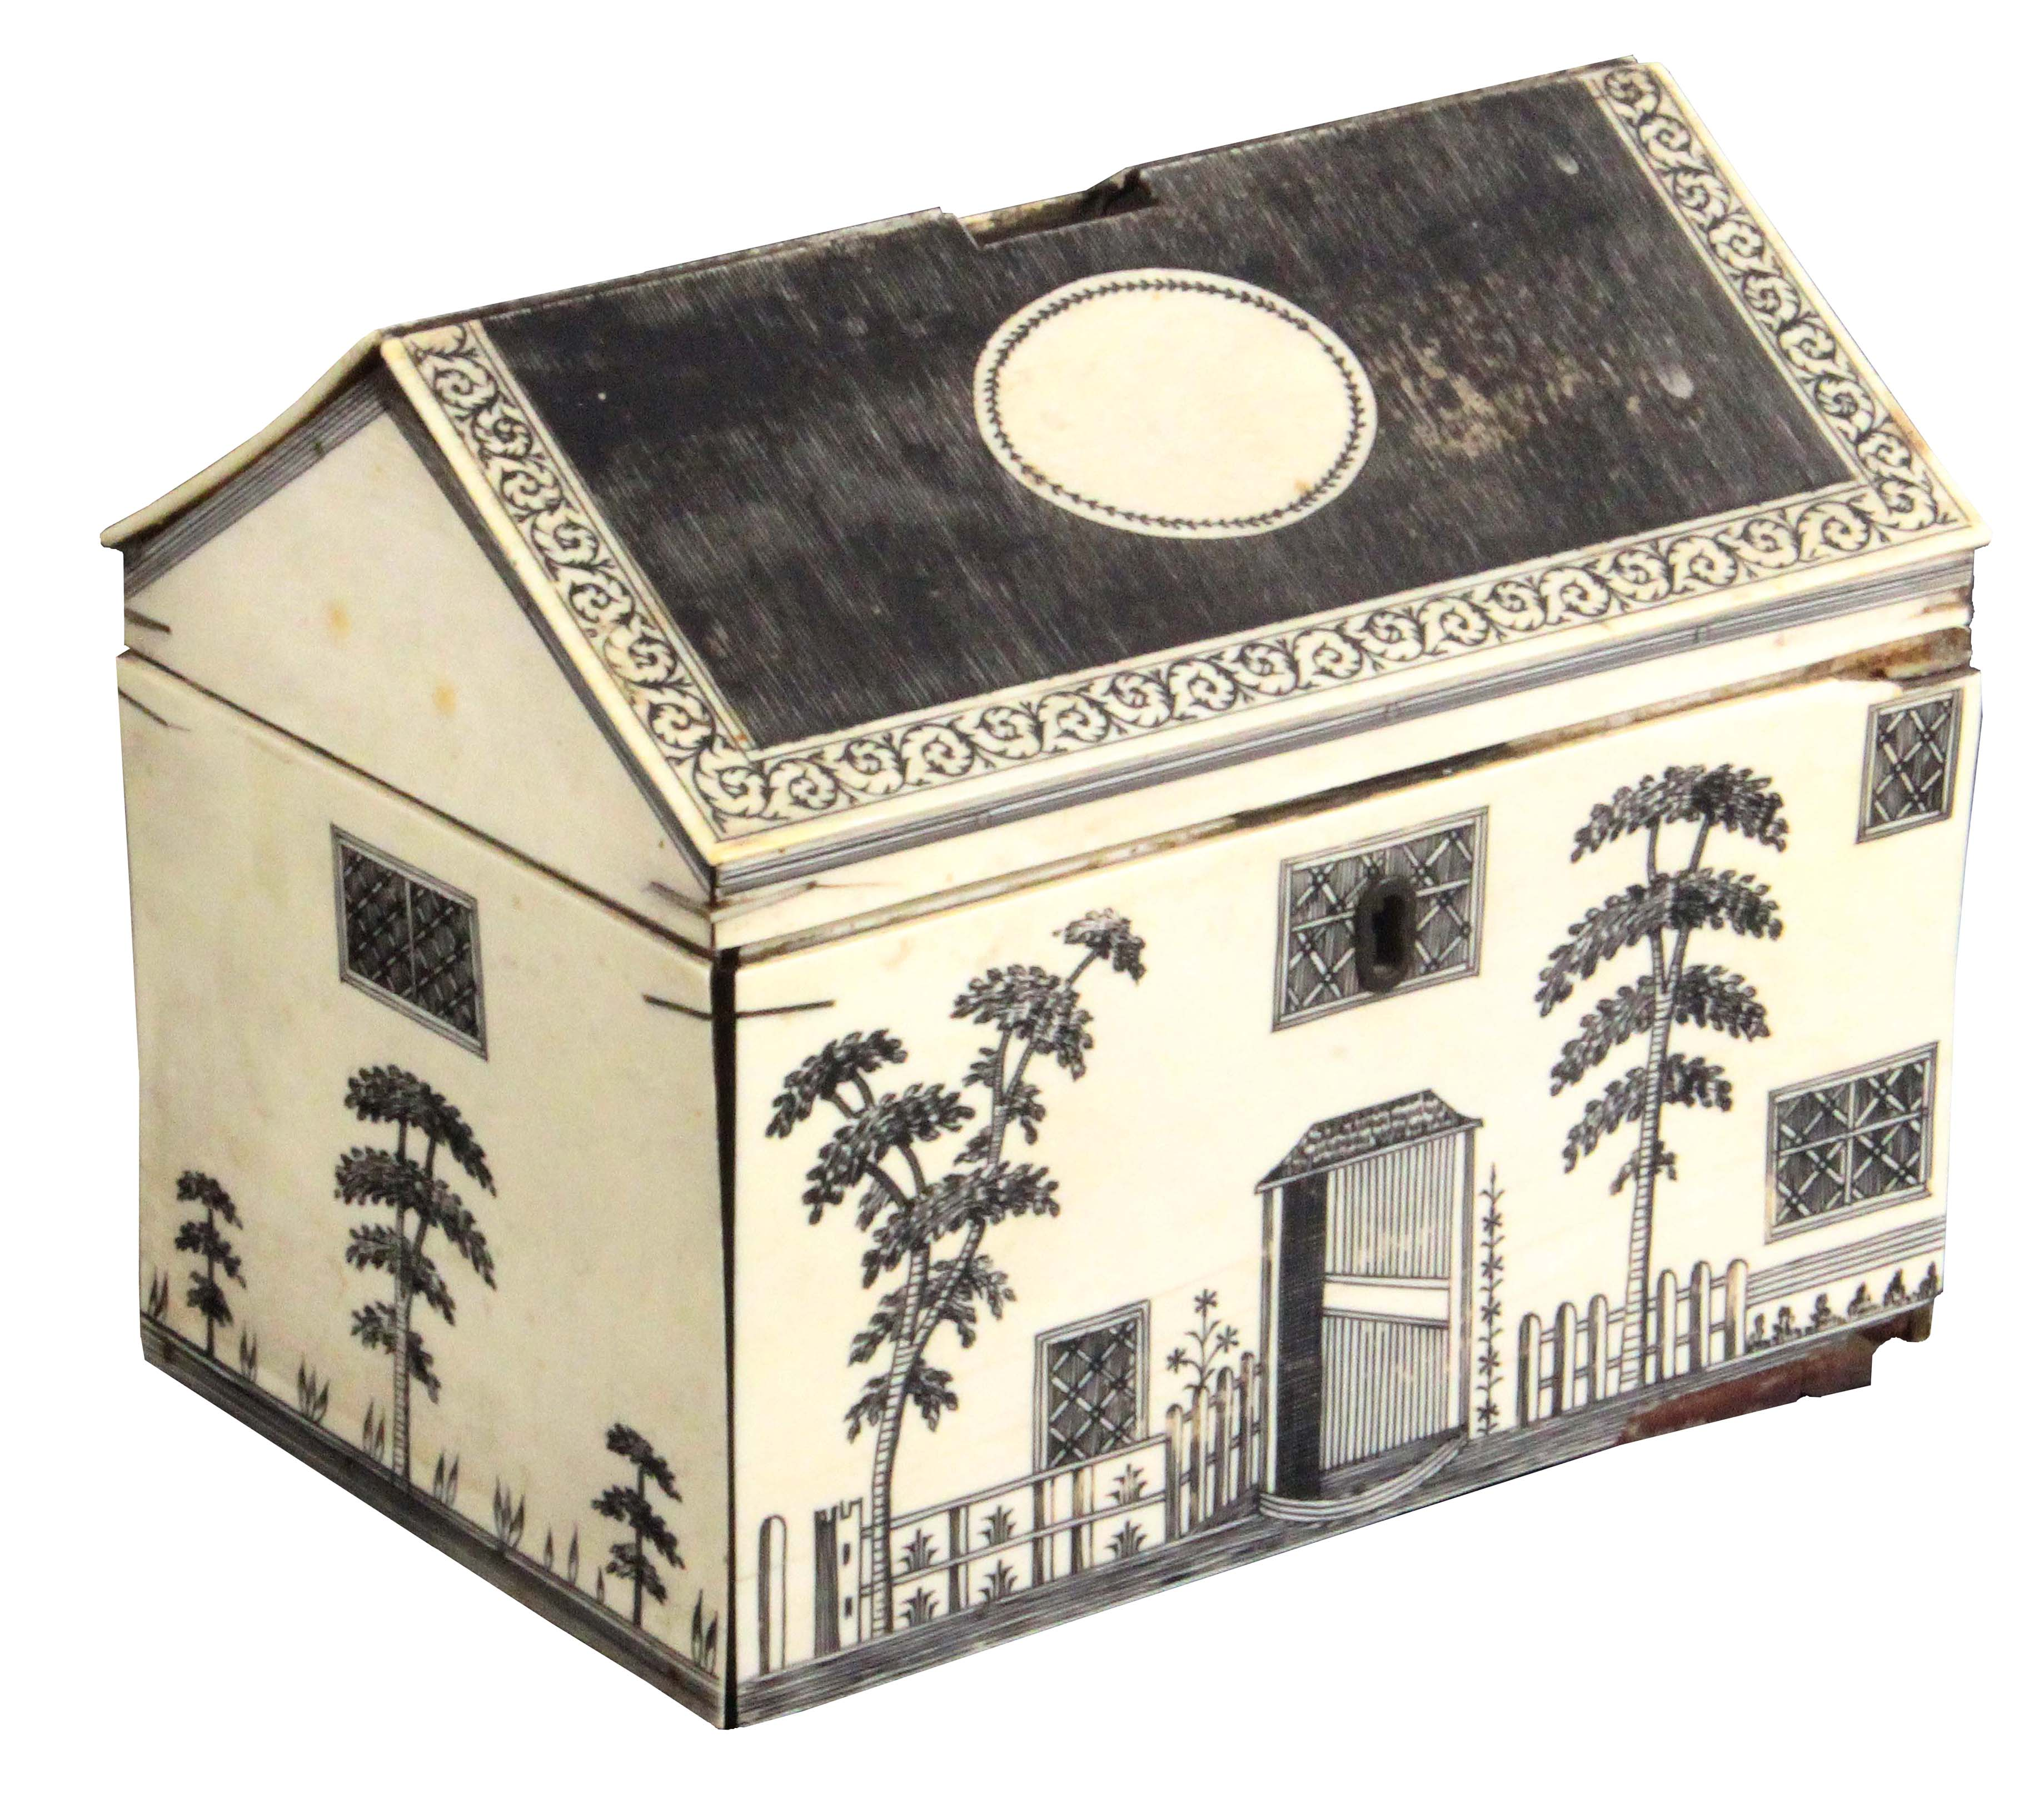 A rare early 19th Century Anglo-Indian ivory veneered sewing box in the form of a house, the pitched